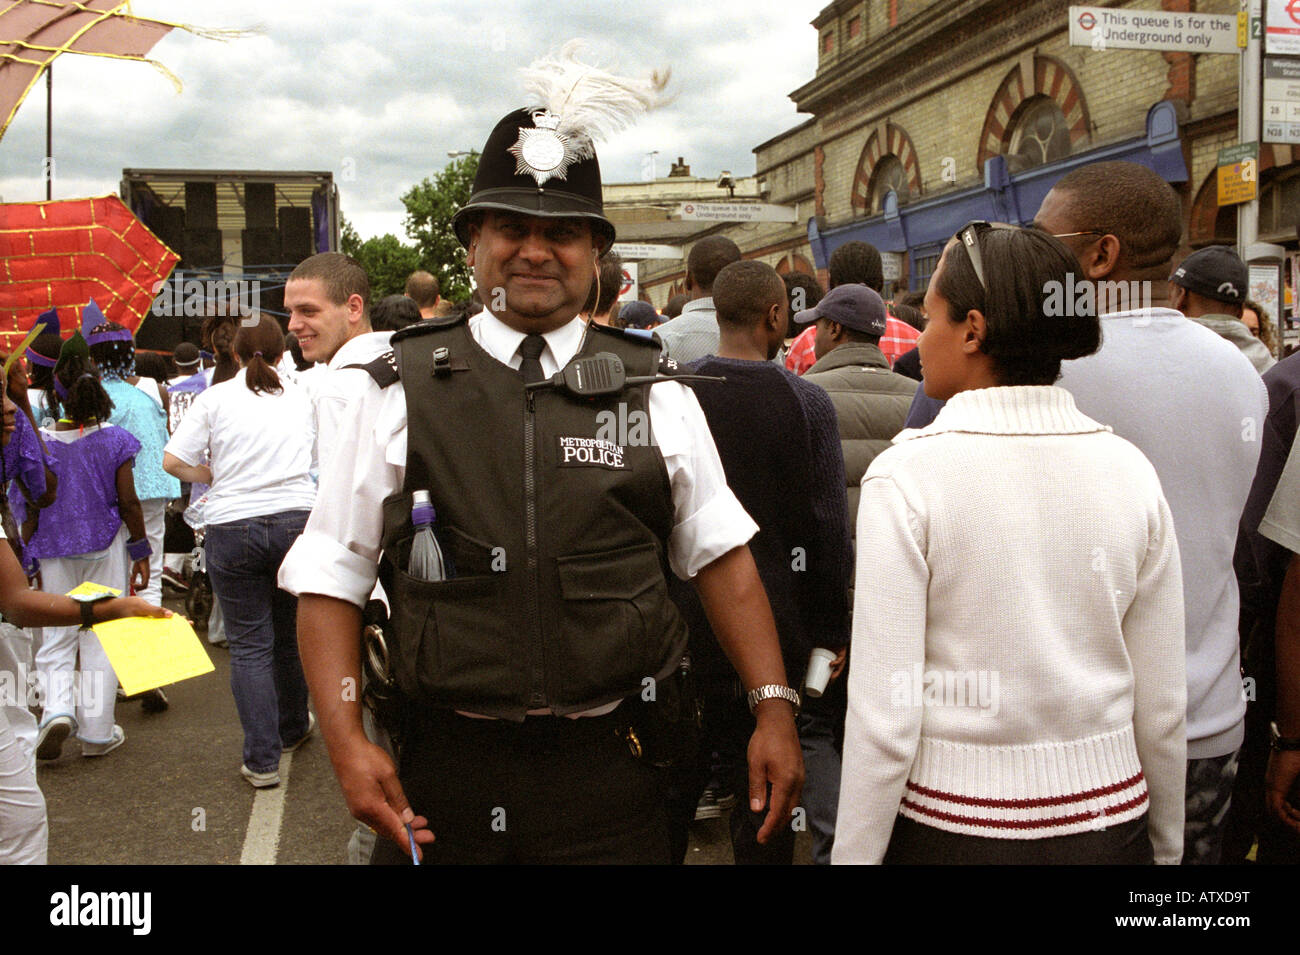 A police officer at the Notting Hill Carnival with a feather in his hat. - Stock Image